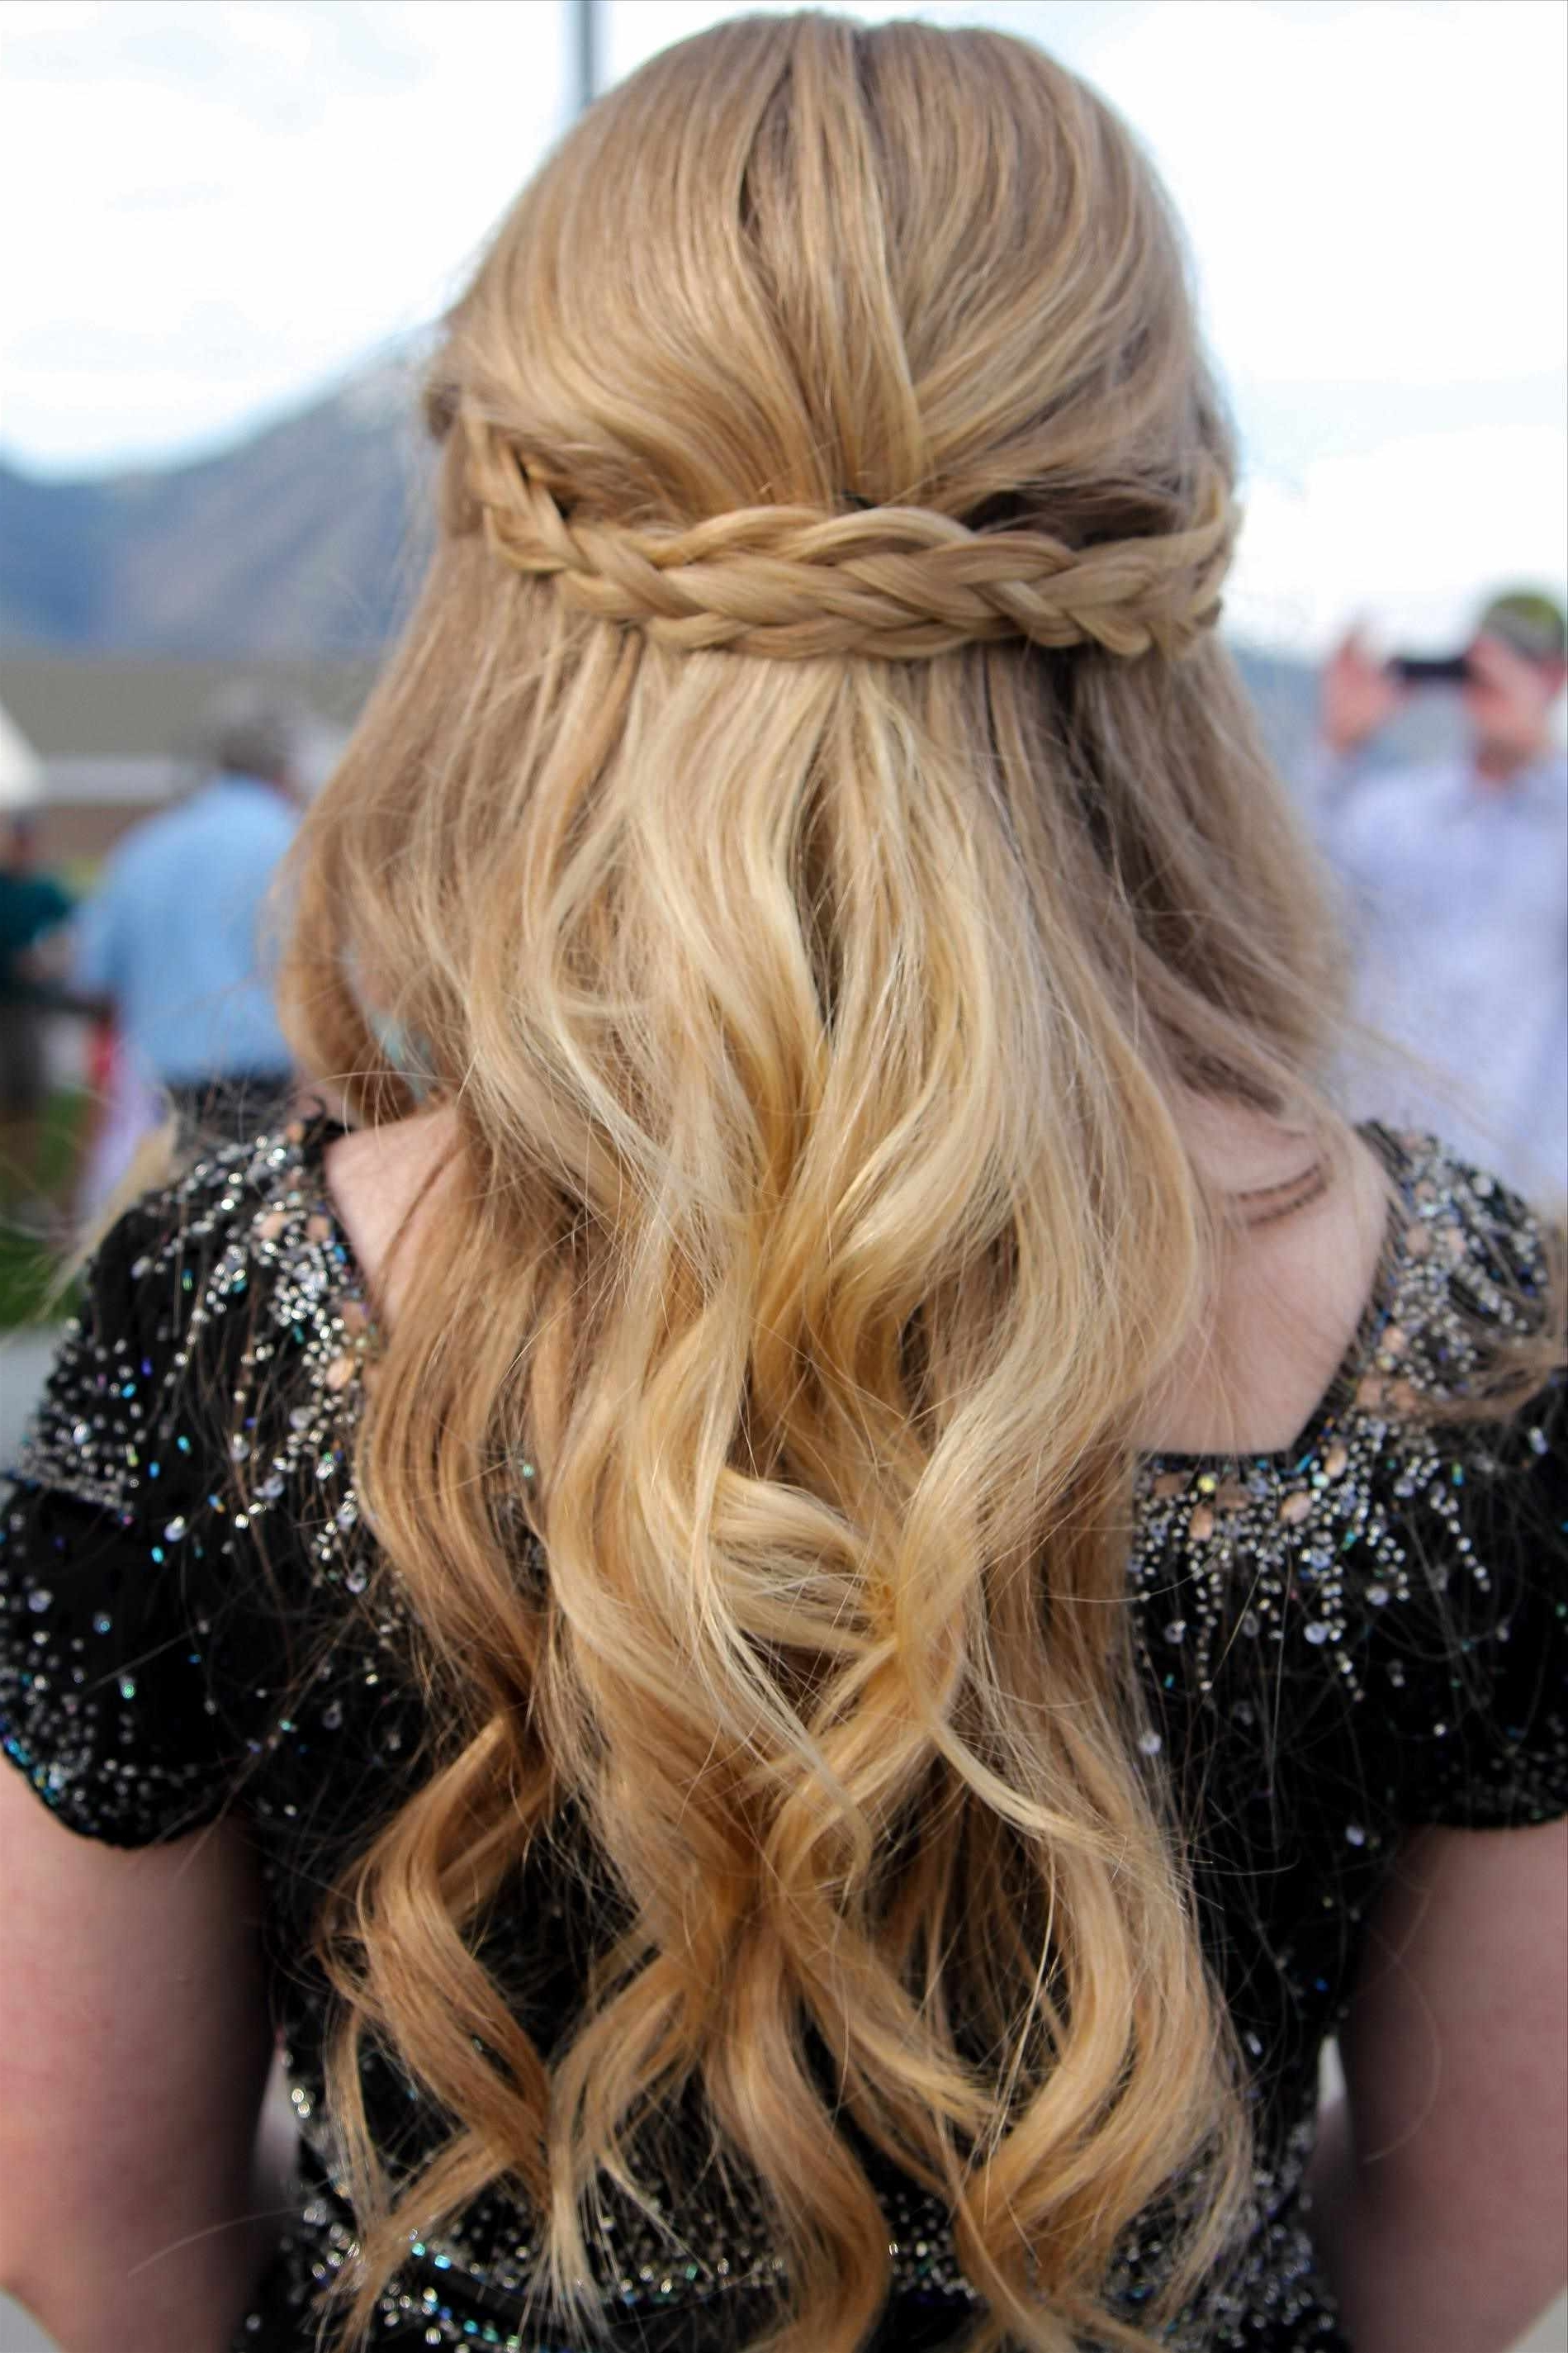 Brilliant Ideas Of Braided Curly Hairstyles Perfect Half Braid In Recent Braided Hairstyles With Hair Down (View 11 of 15)